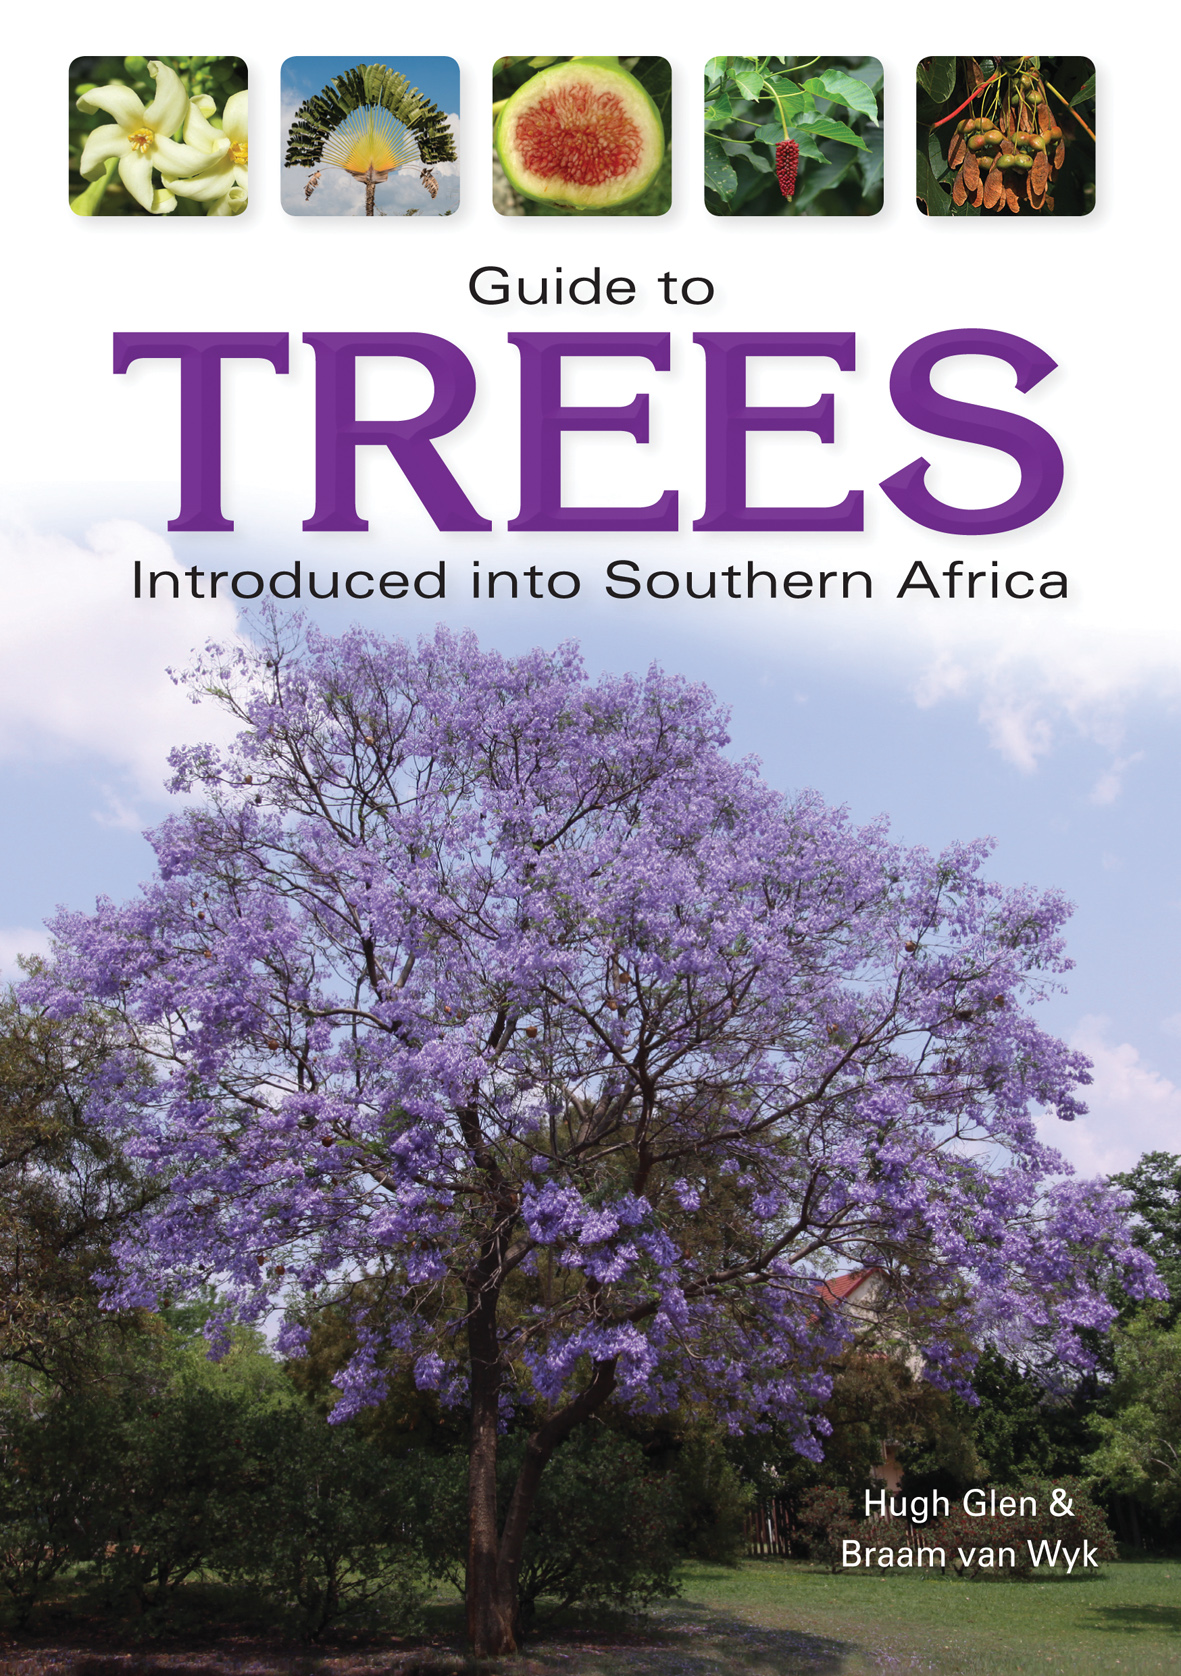 Guide to Trees Introduced into Southern Africa